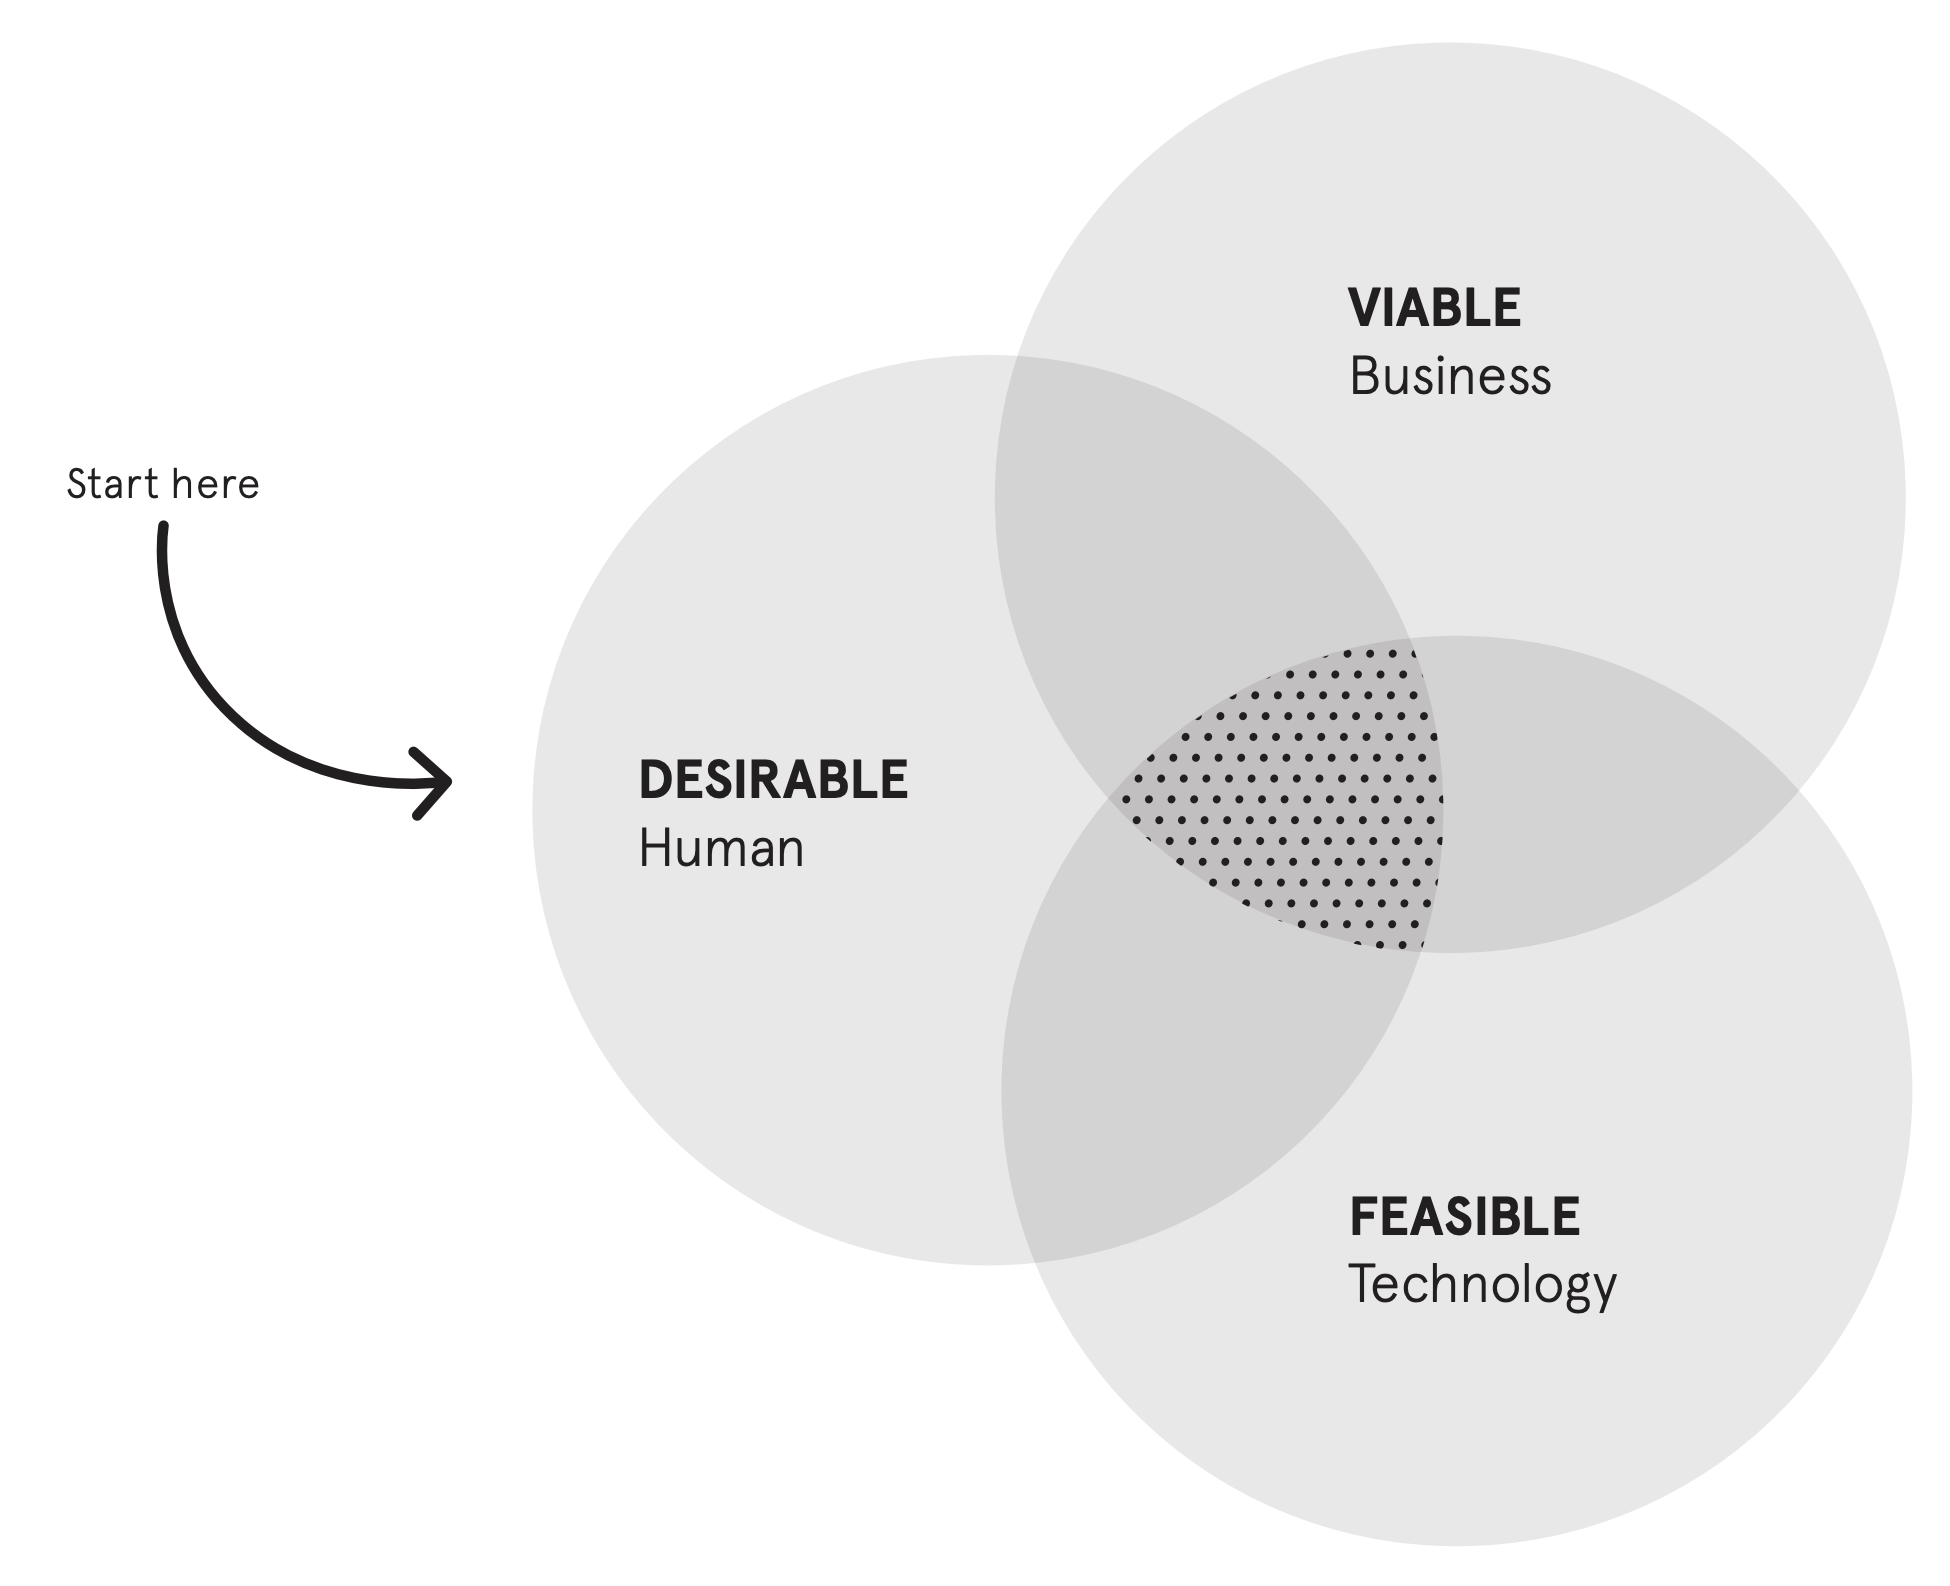 The 3 lenses & roles represented in product development: desirability (design), viability (business), and feasibility (tech).